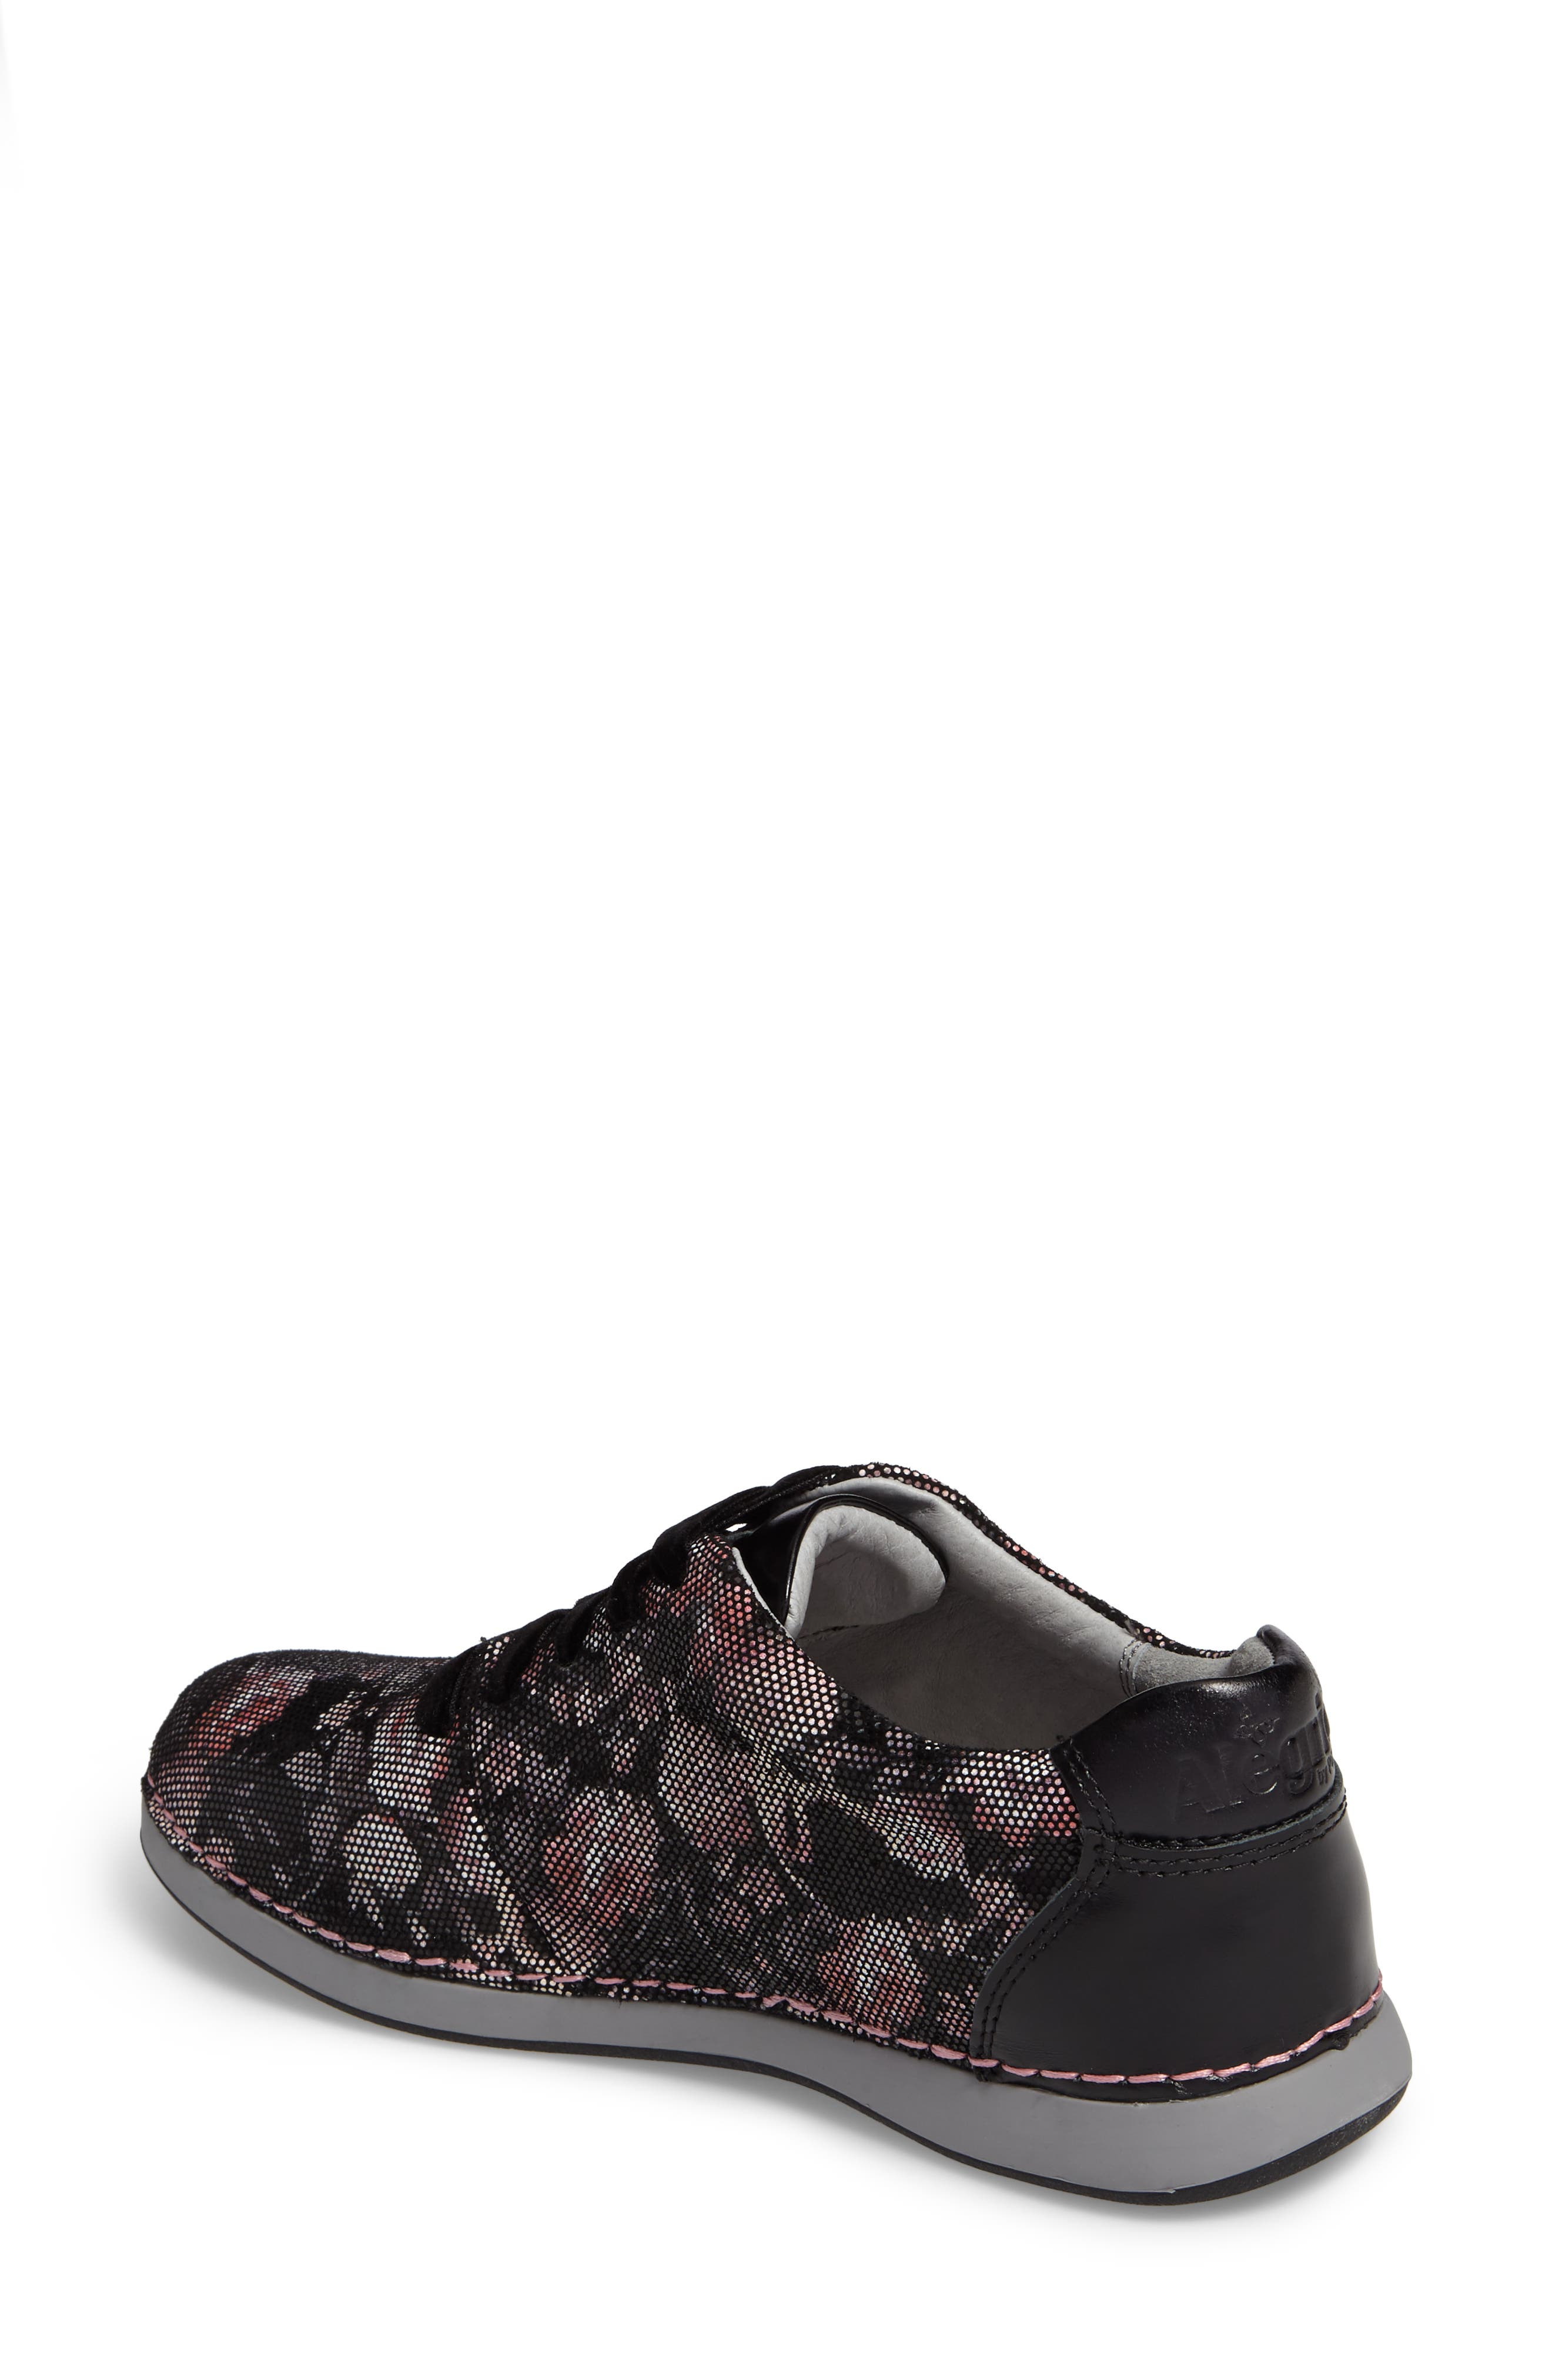 Essence Lace-Up Leather Oxford,                             Alternate thumbnail 2, color,                             001